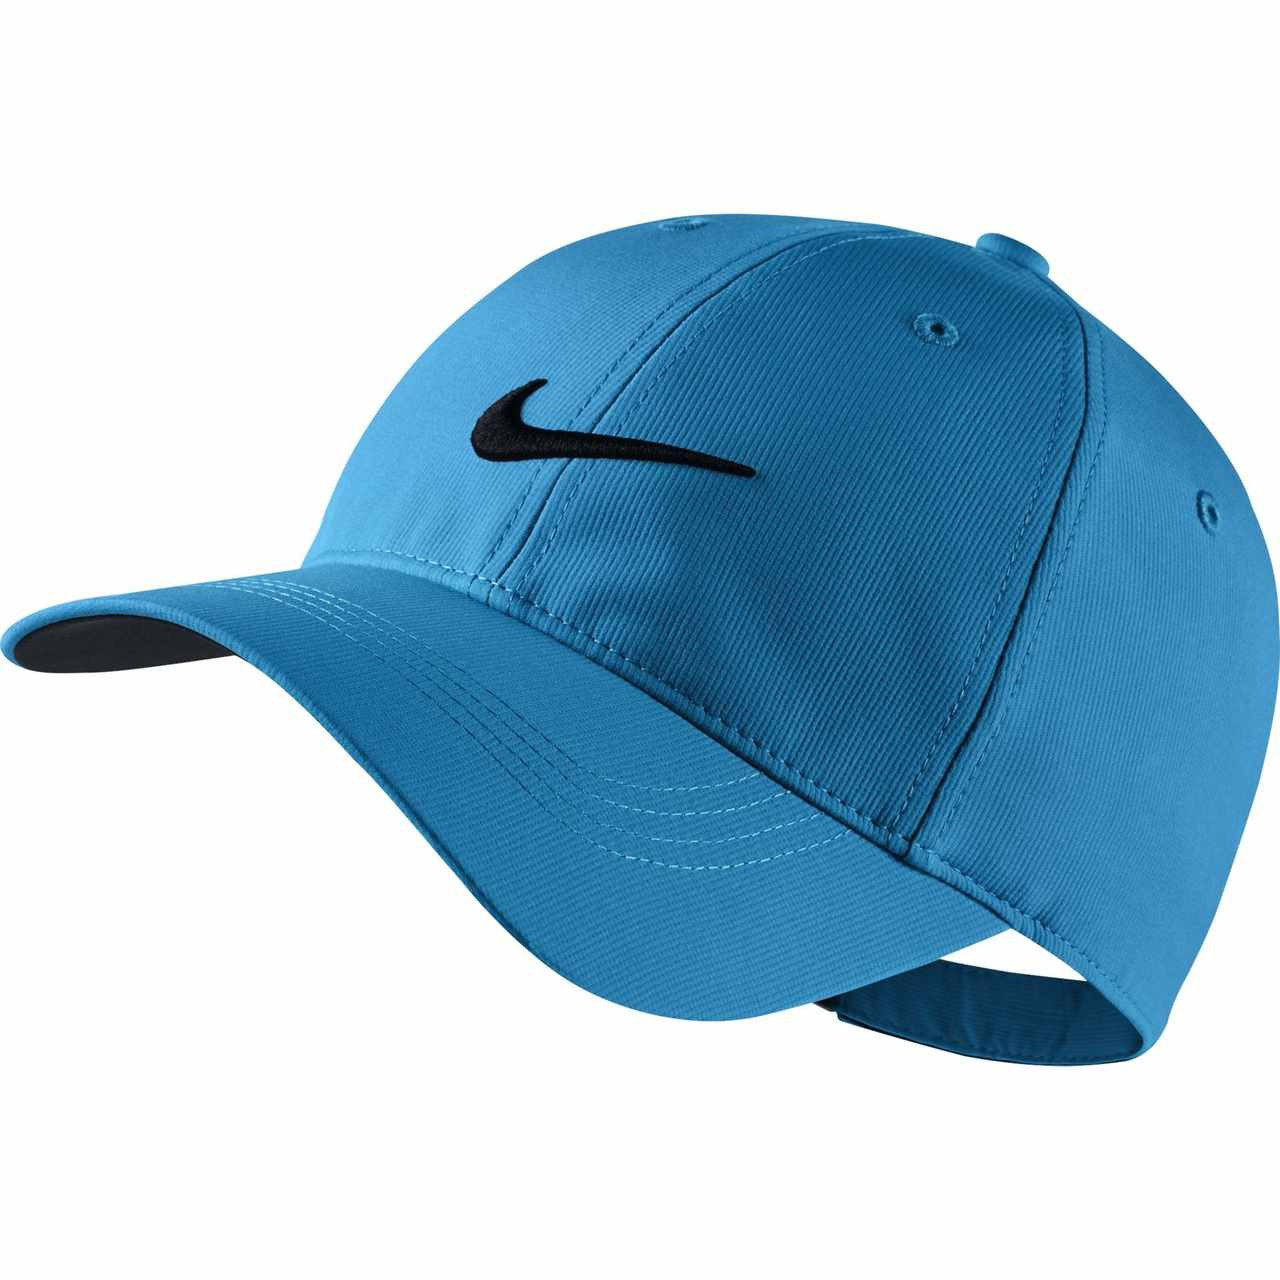 a11cf23ec192 Nike Golf Legacy 91 Tech Adjustable Hat (Photo Blue Black) - Valor ...